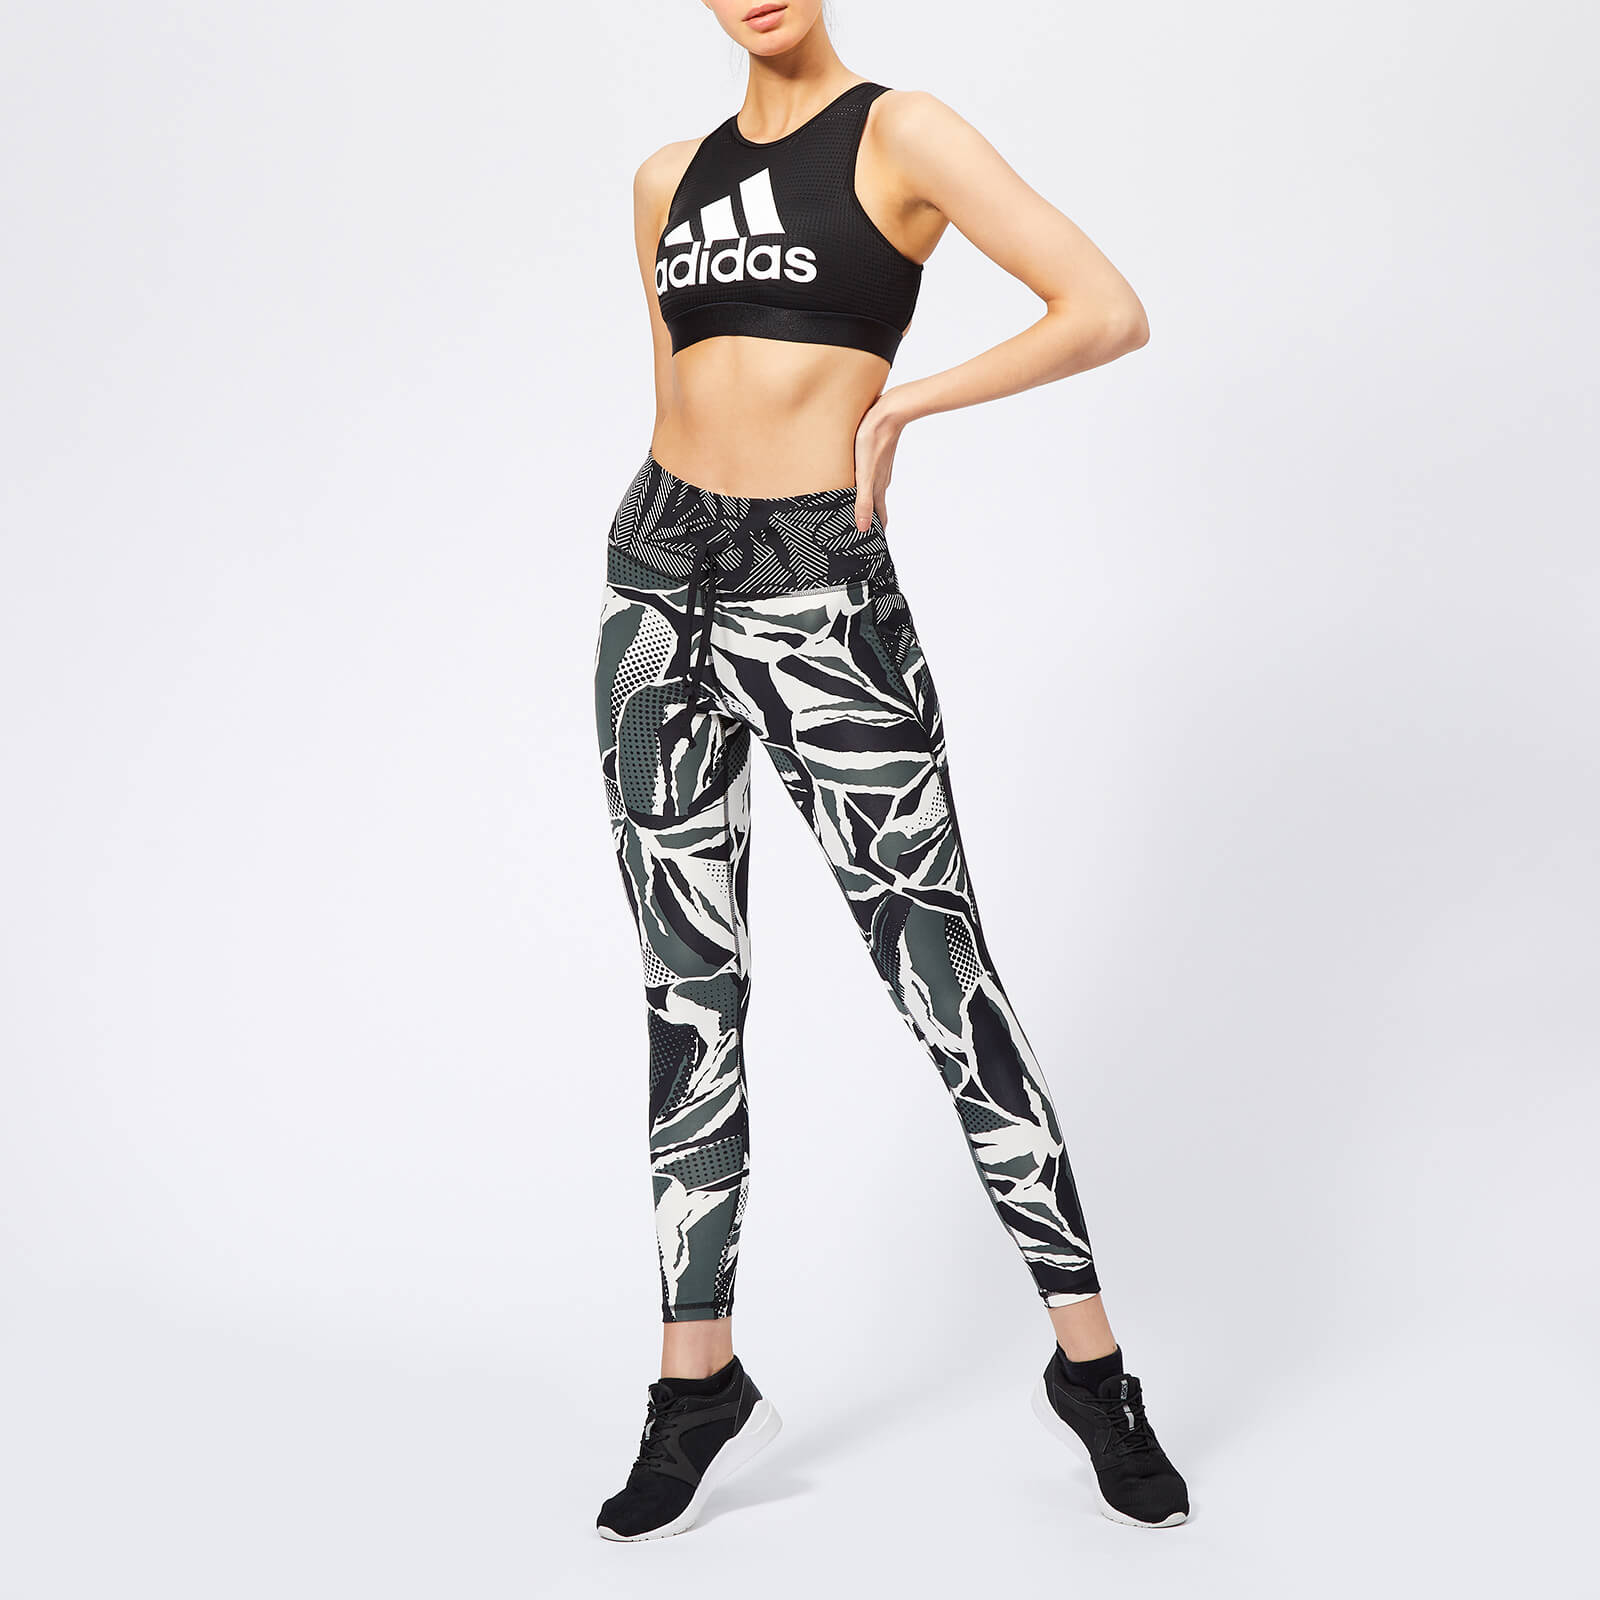 adidas Women's Believe This High Rise 7/8 Tights - Black